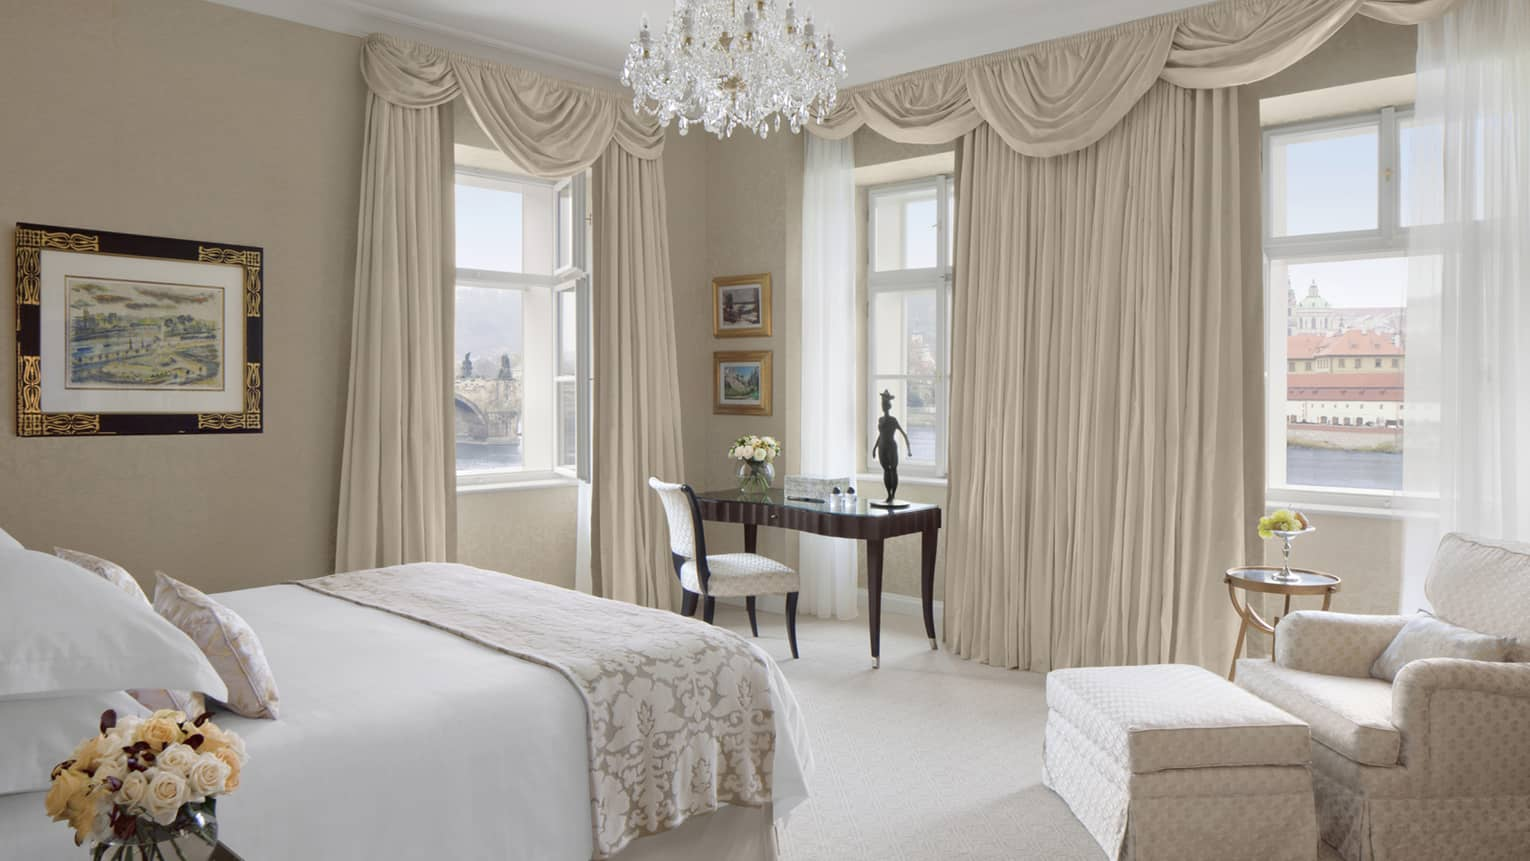 Room with white bed, tan club chair and ottoman, chandelier, tan curtains and desk